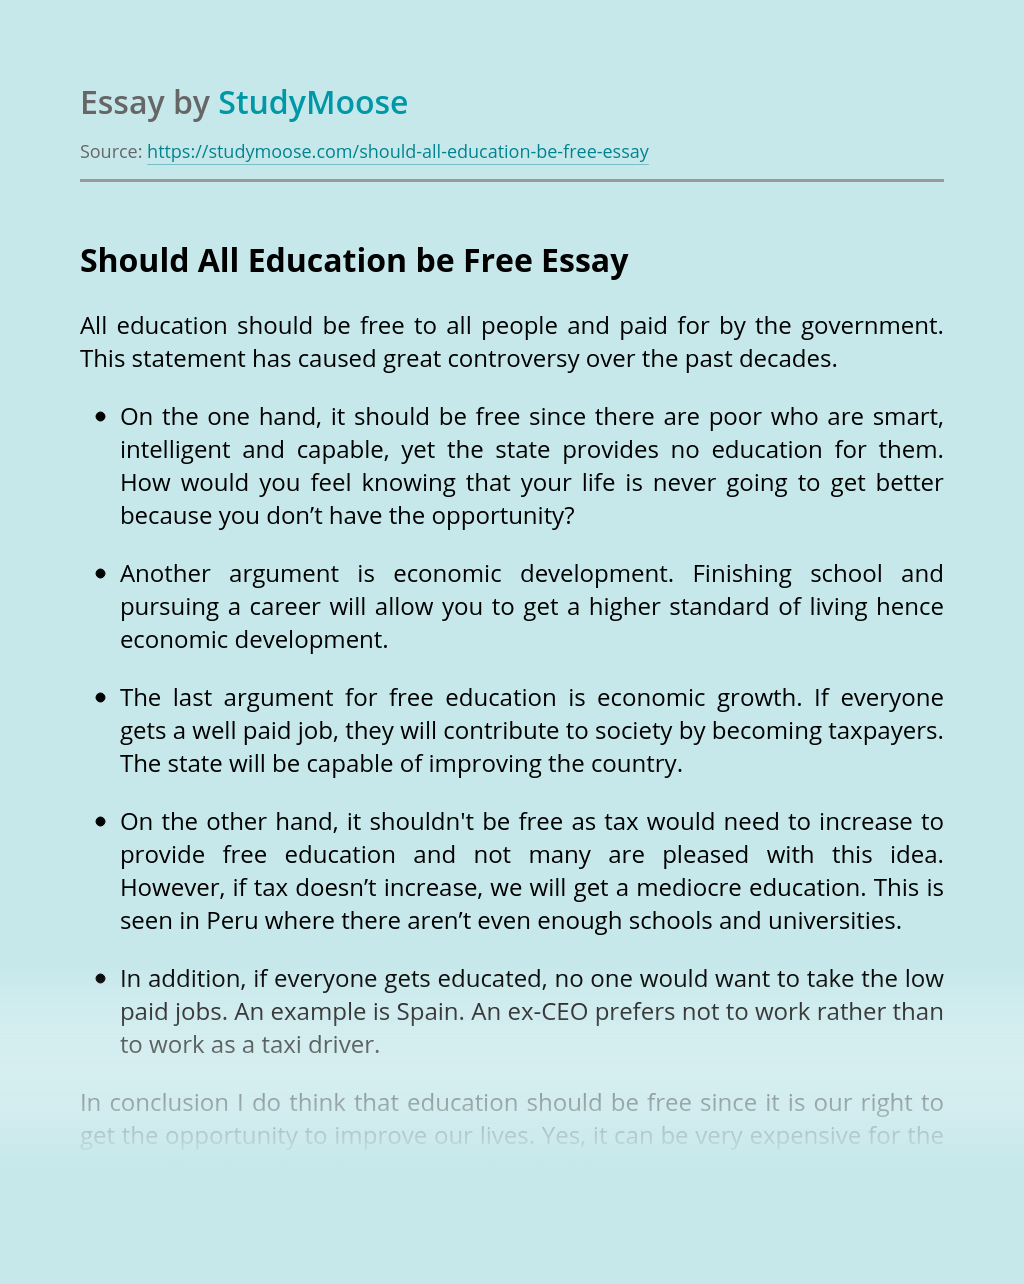 Should All Education be Free